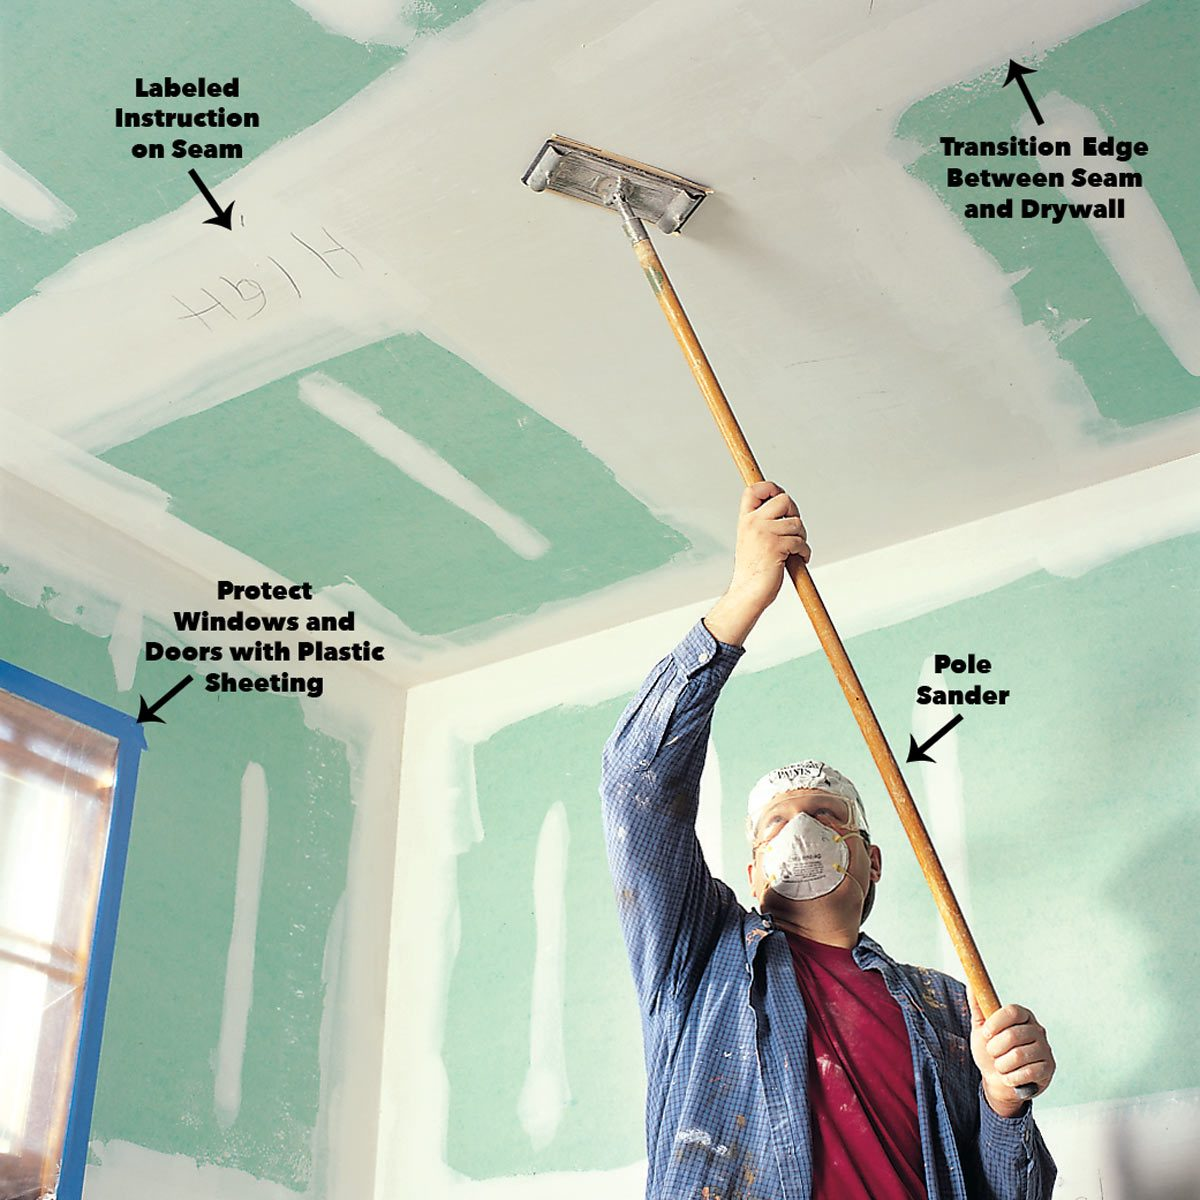 using a pole sander to sand drywall